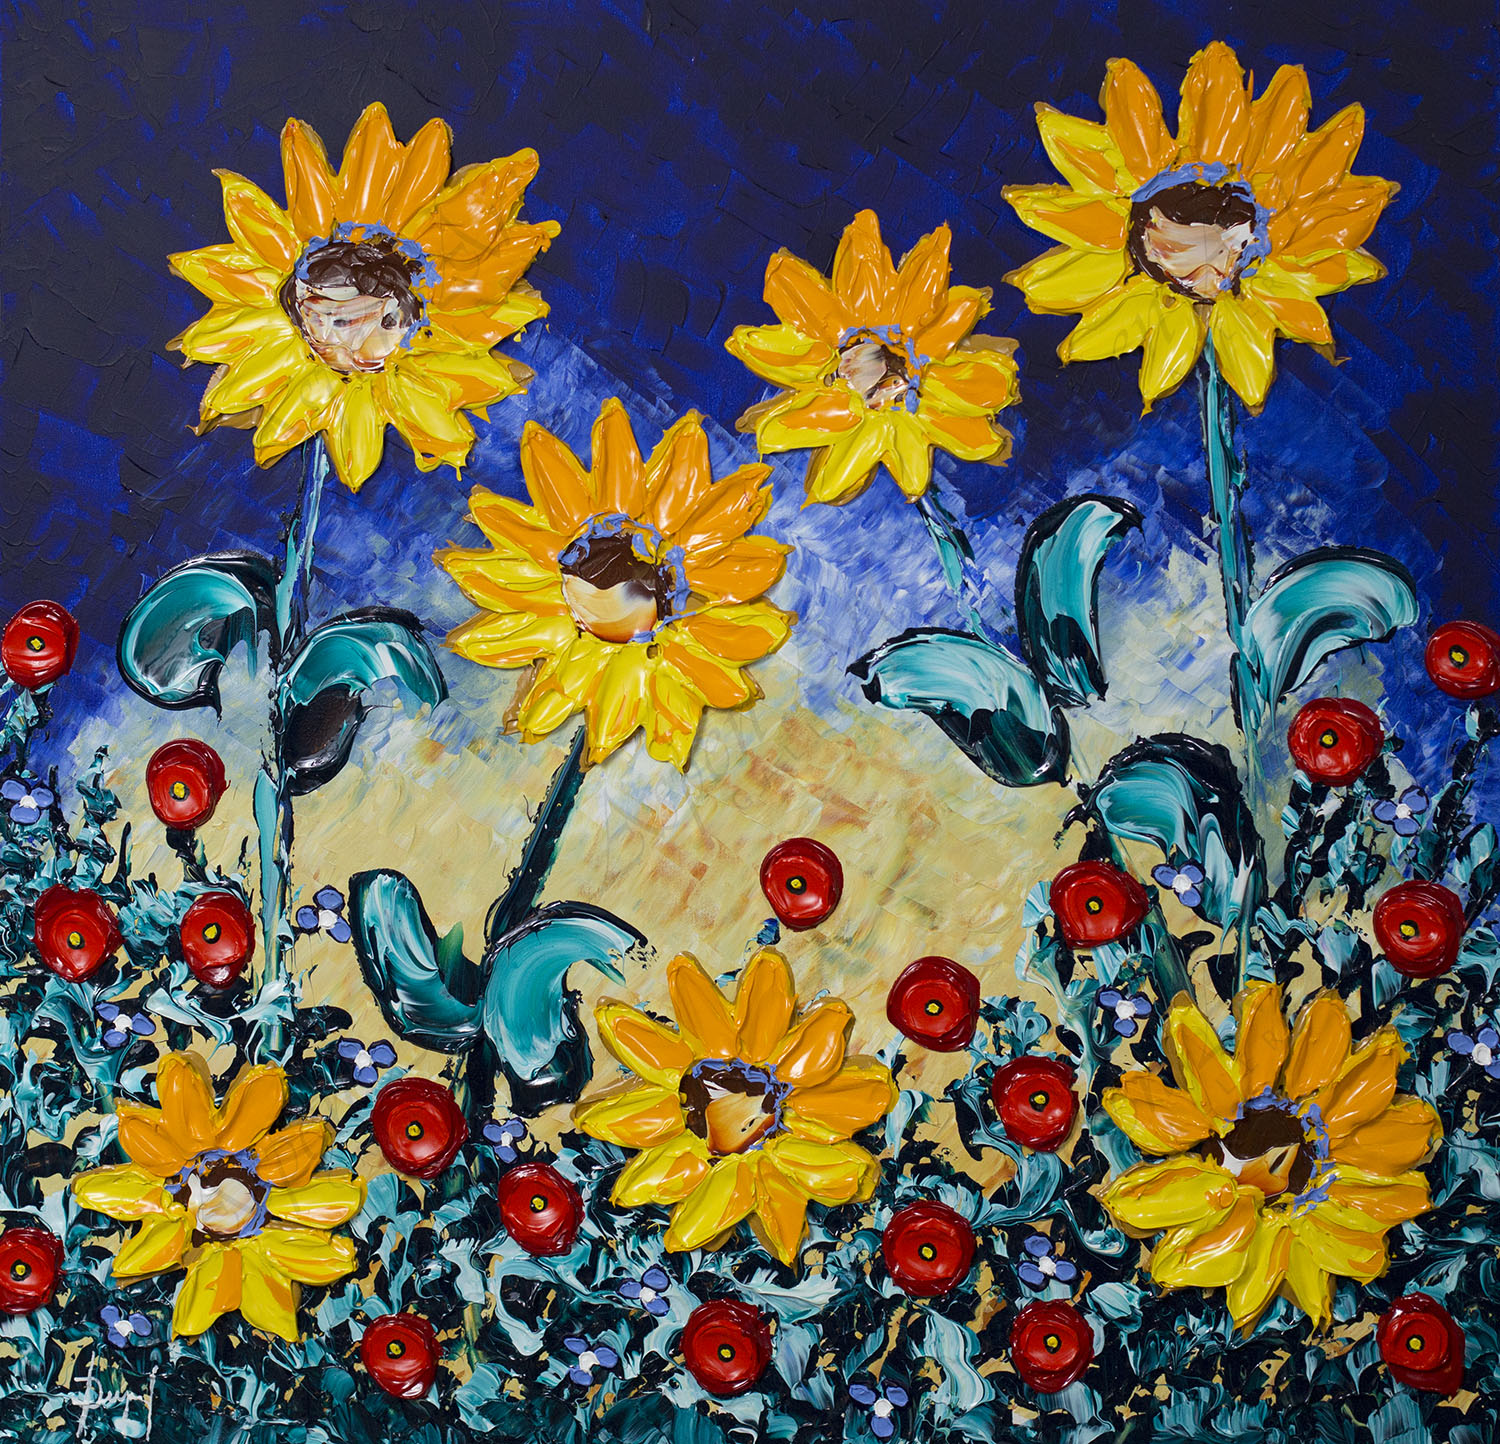 Bright Sunflowers of Delightful Meadows 36x36